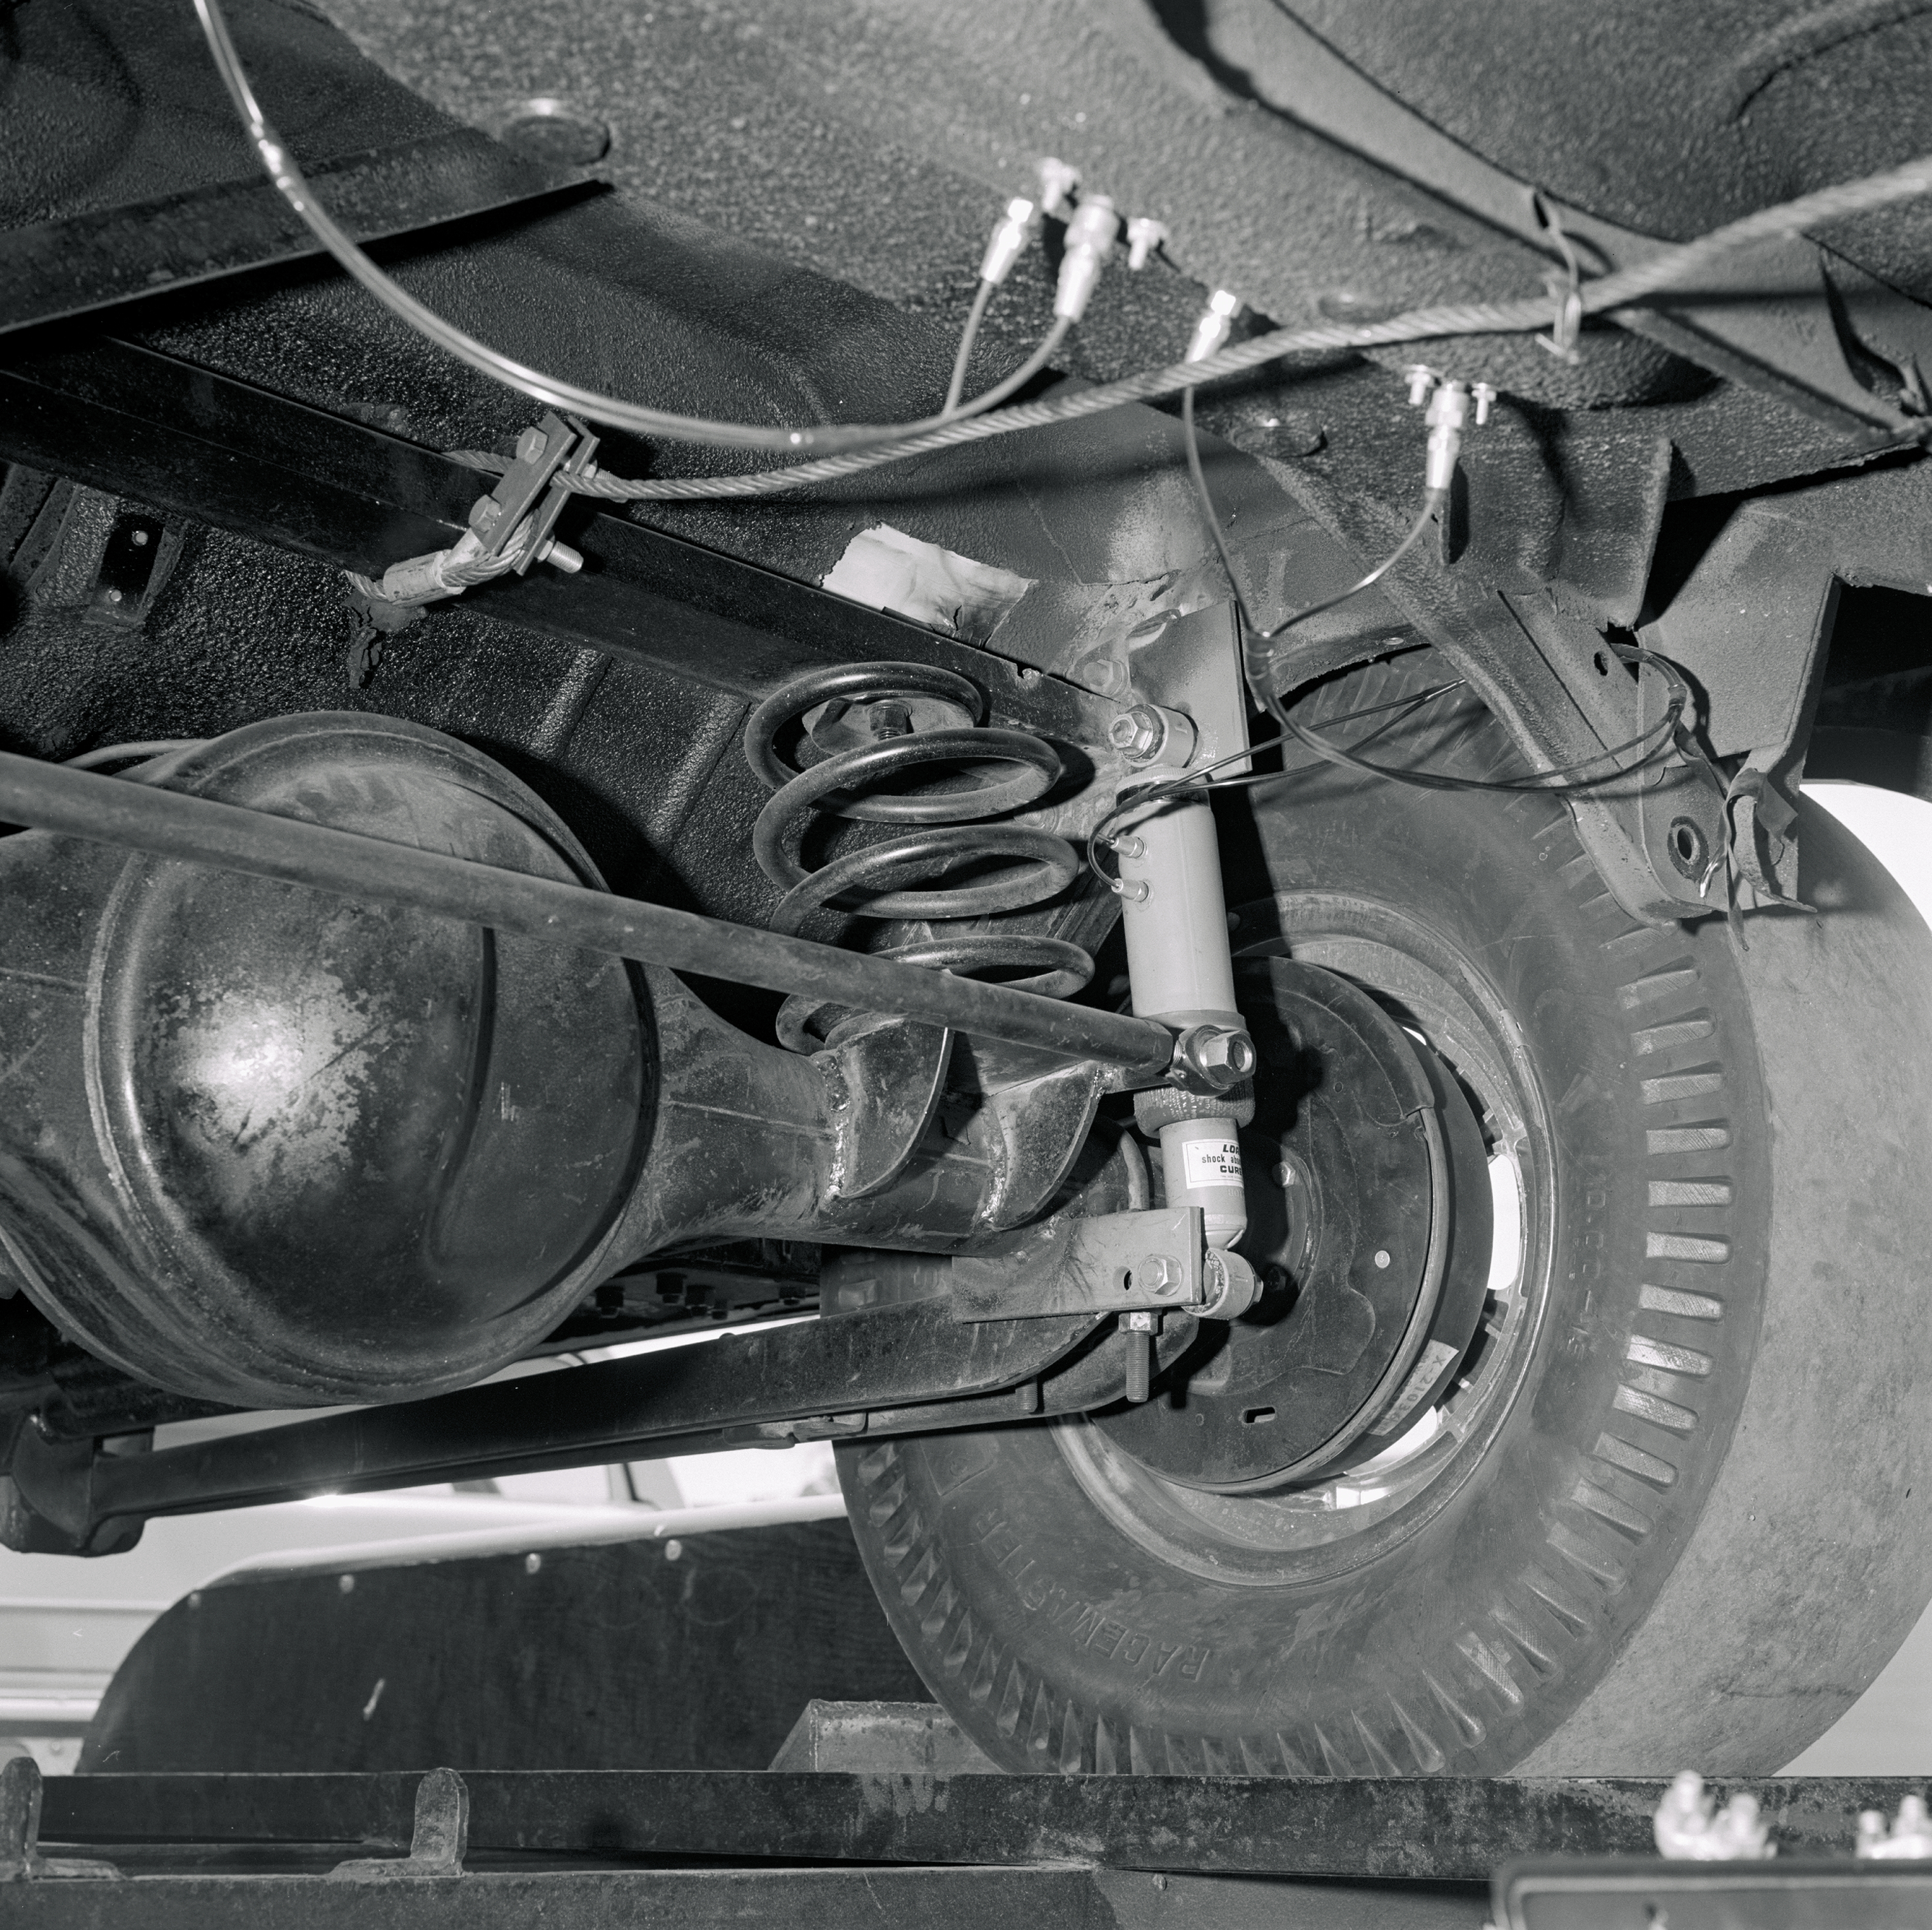 Everything was shifted forward 11-inches to accommodate the '57 Pontiac rear end. Folks, this is how racecars were done and detailed in the day.